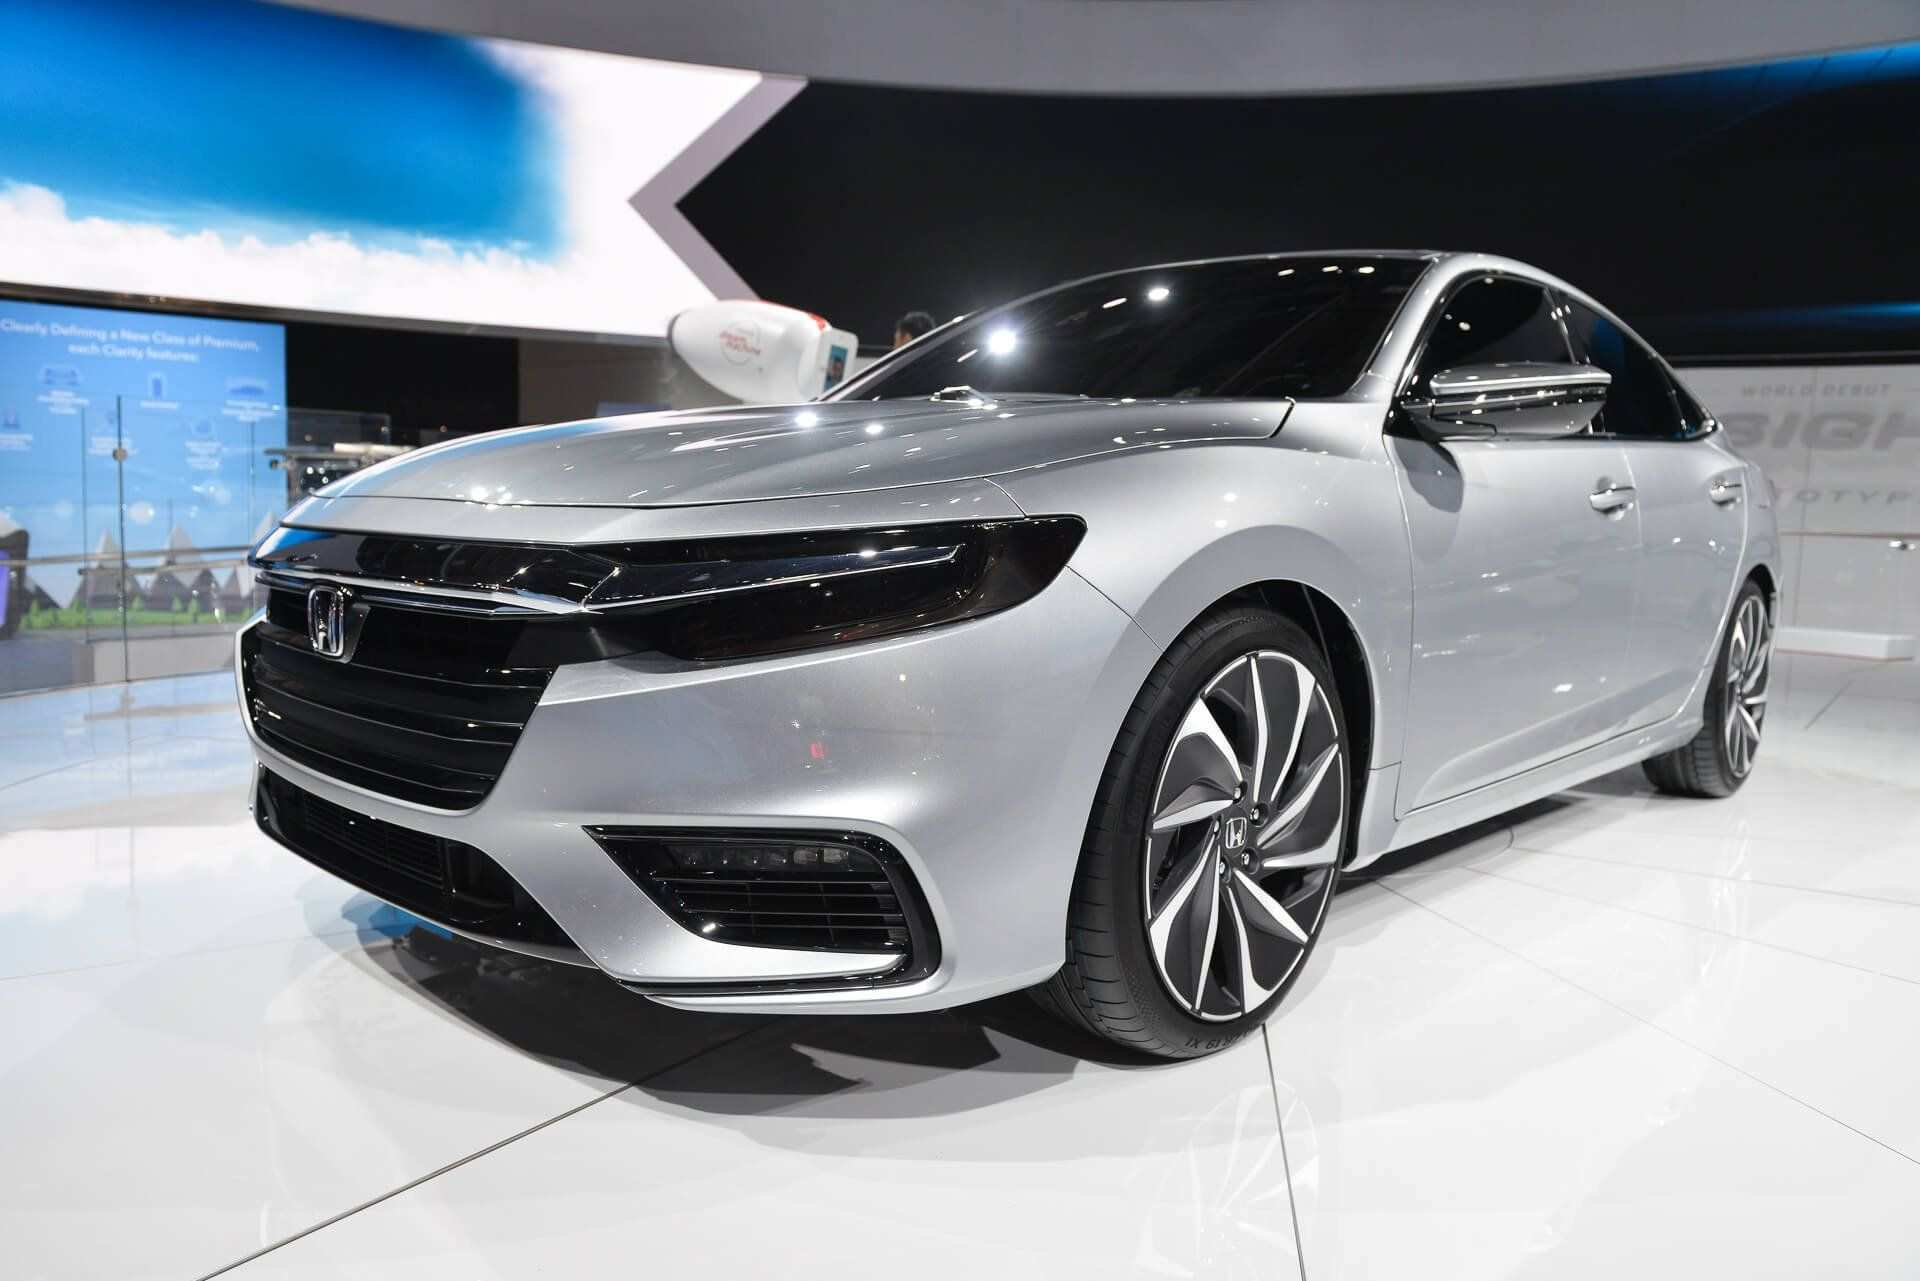 75 The 2020 Honda Civic Wallpaper